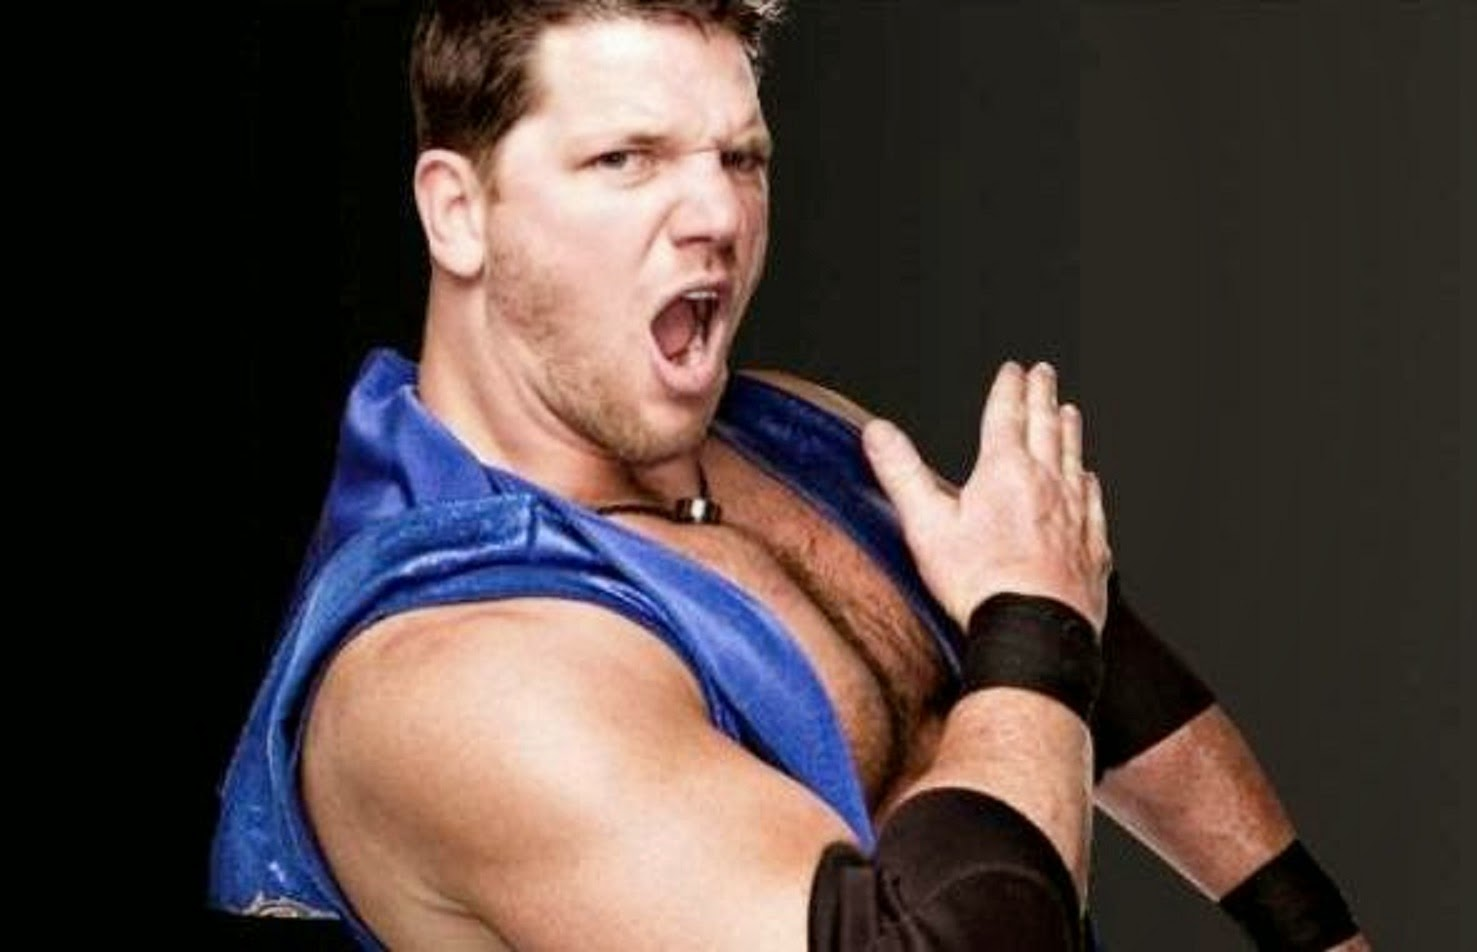 AJ Styles Hd Free Wallpapers